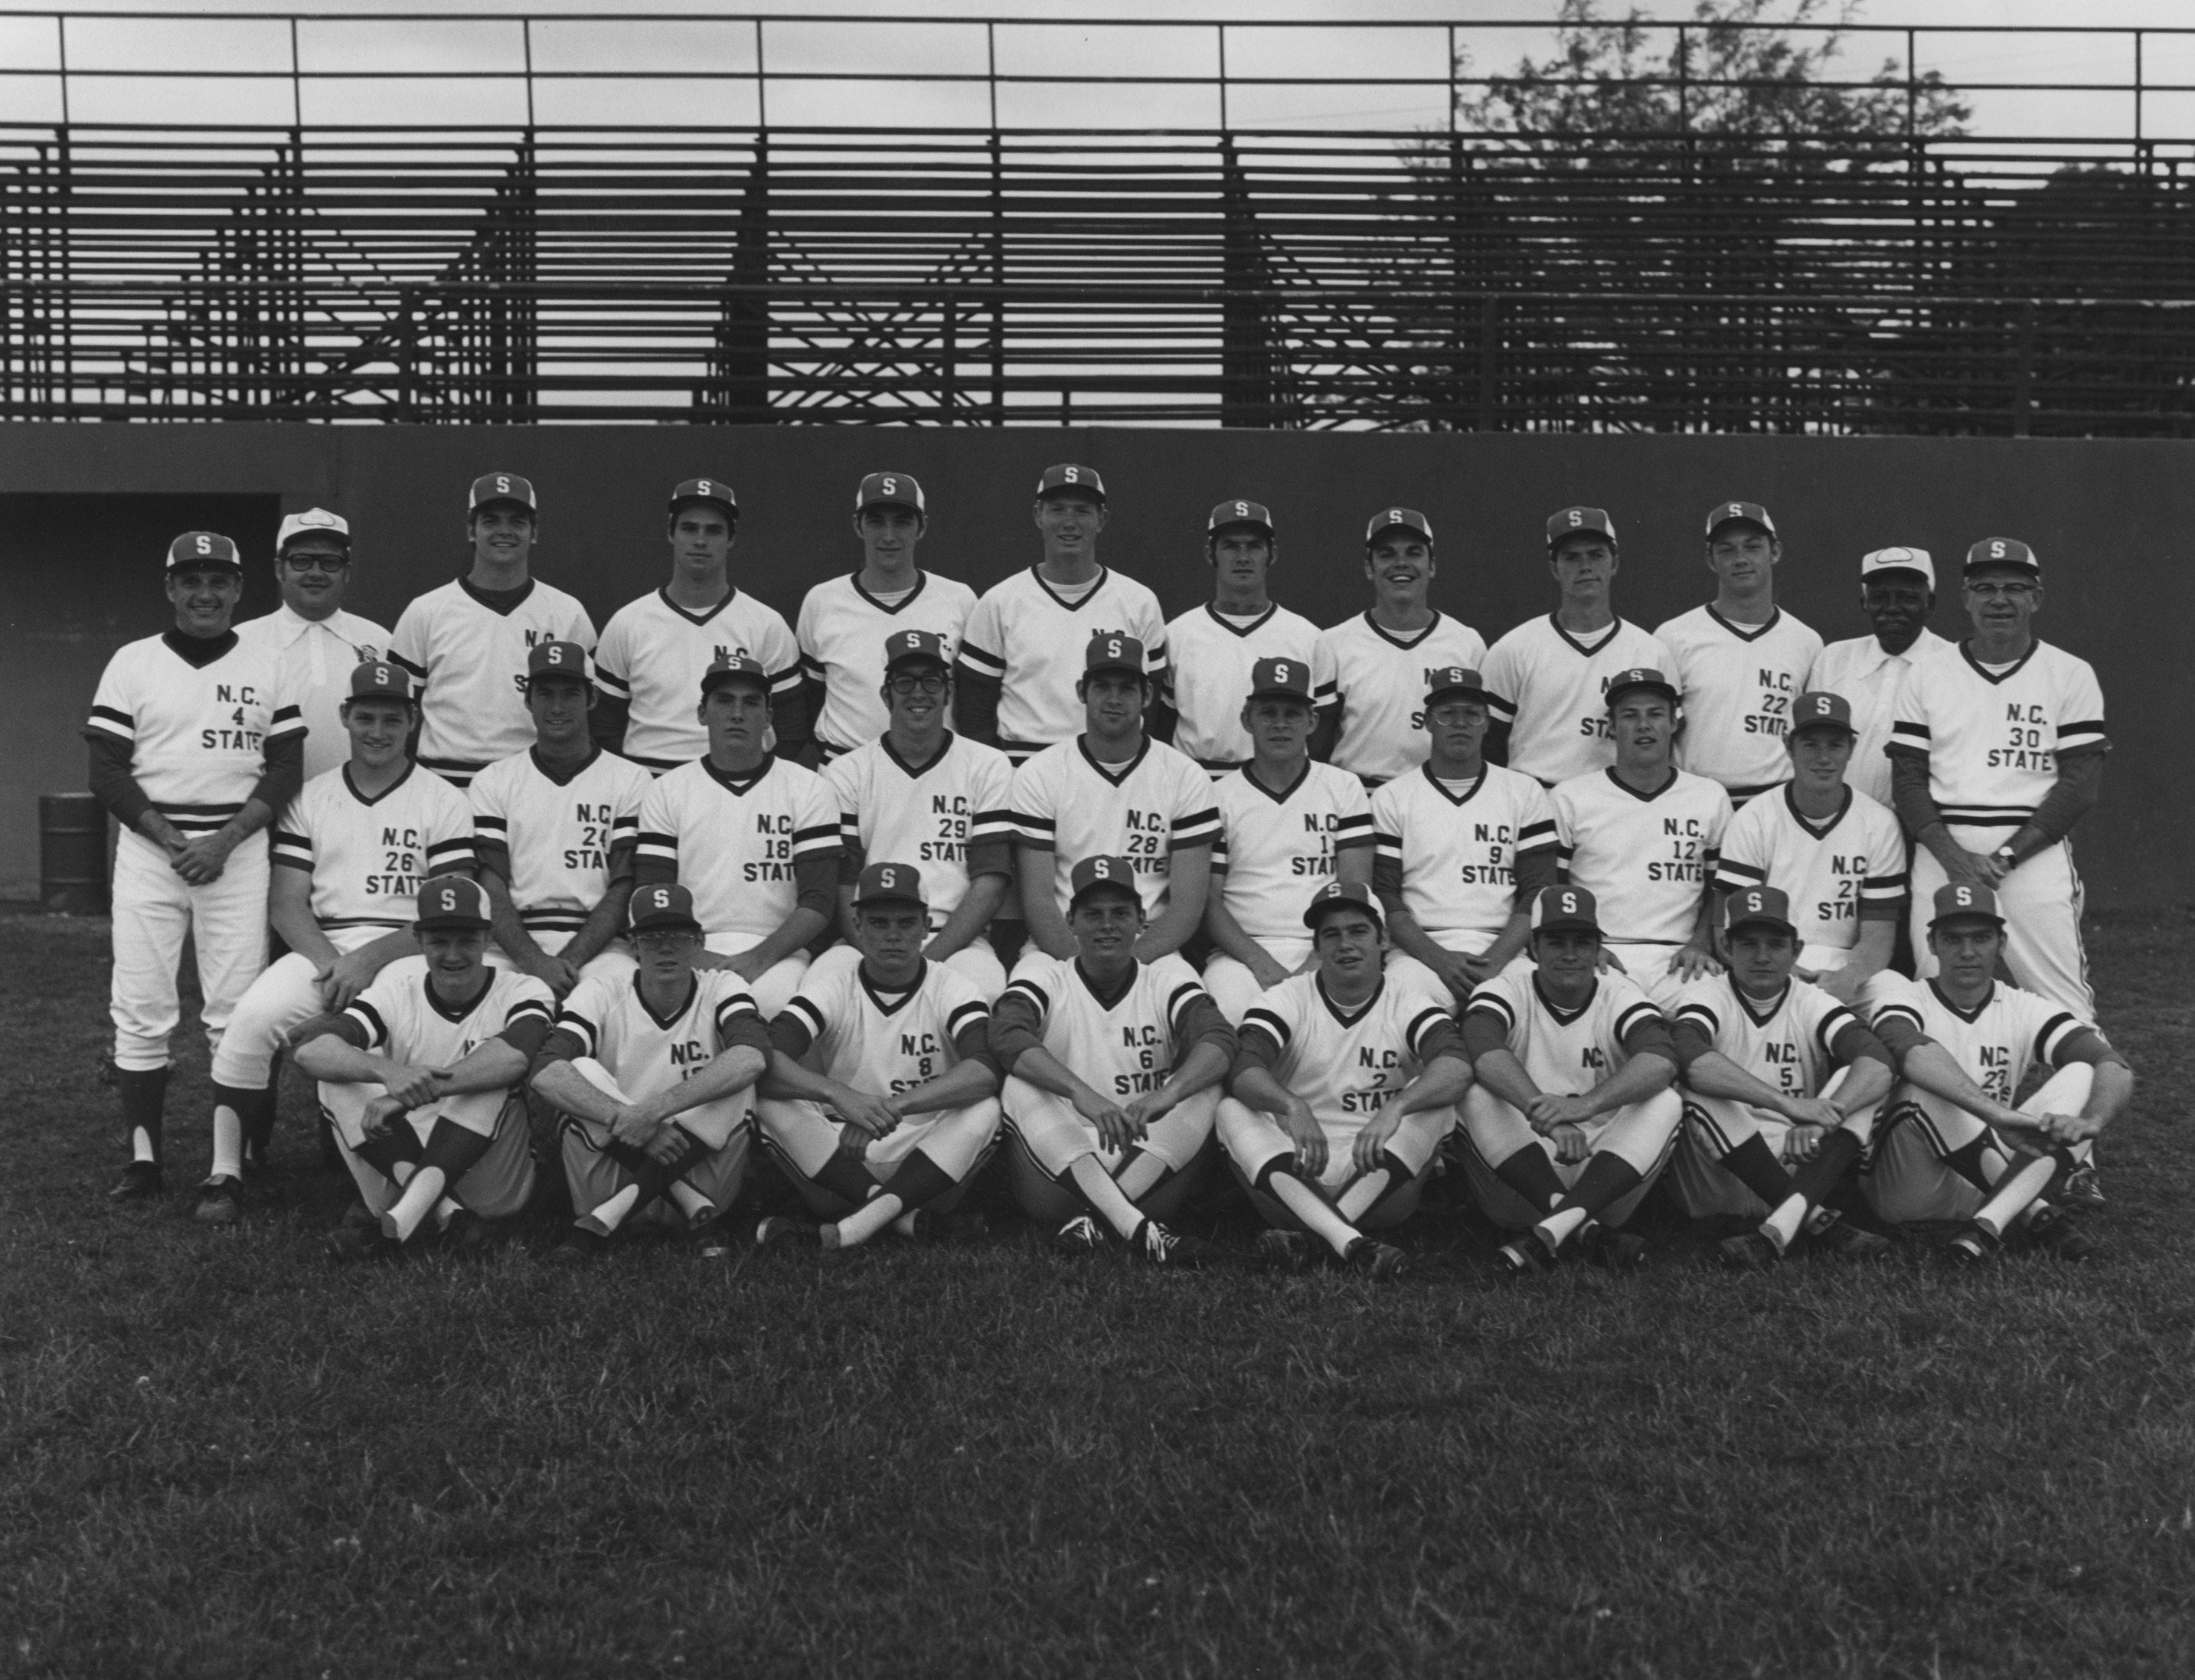 North Carolina State College baseball team, 1973